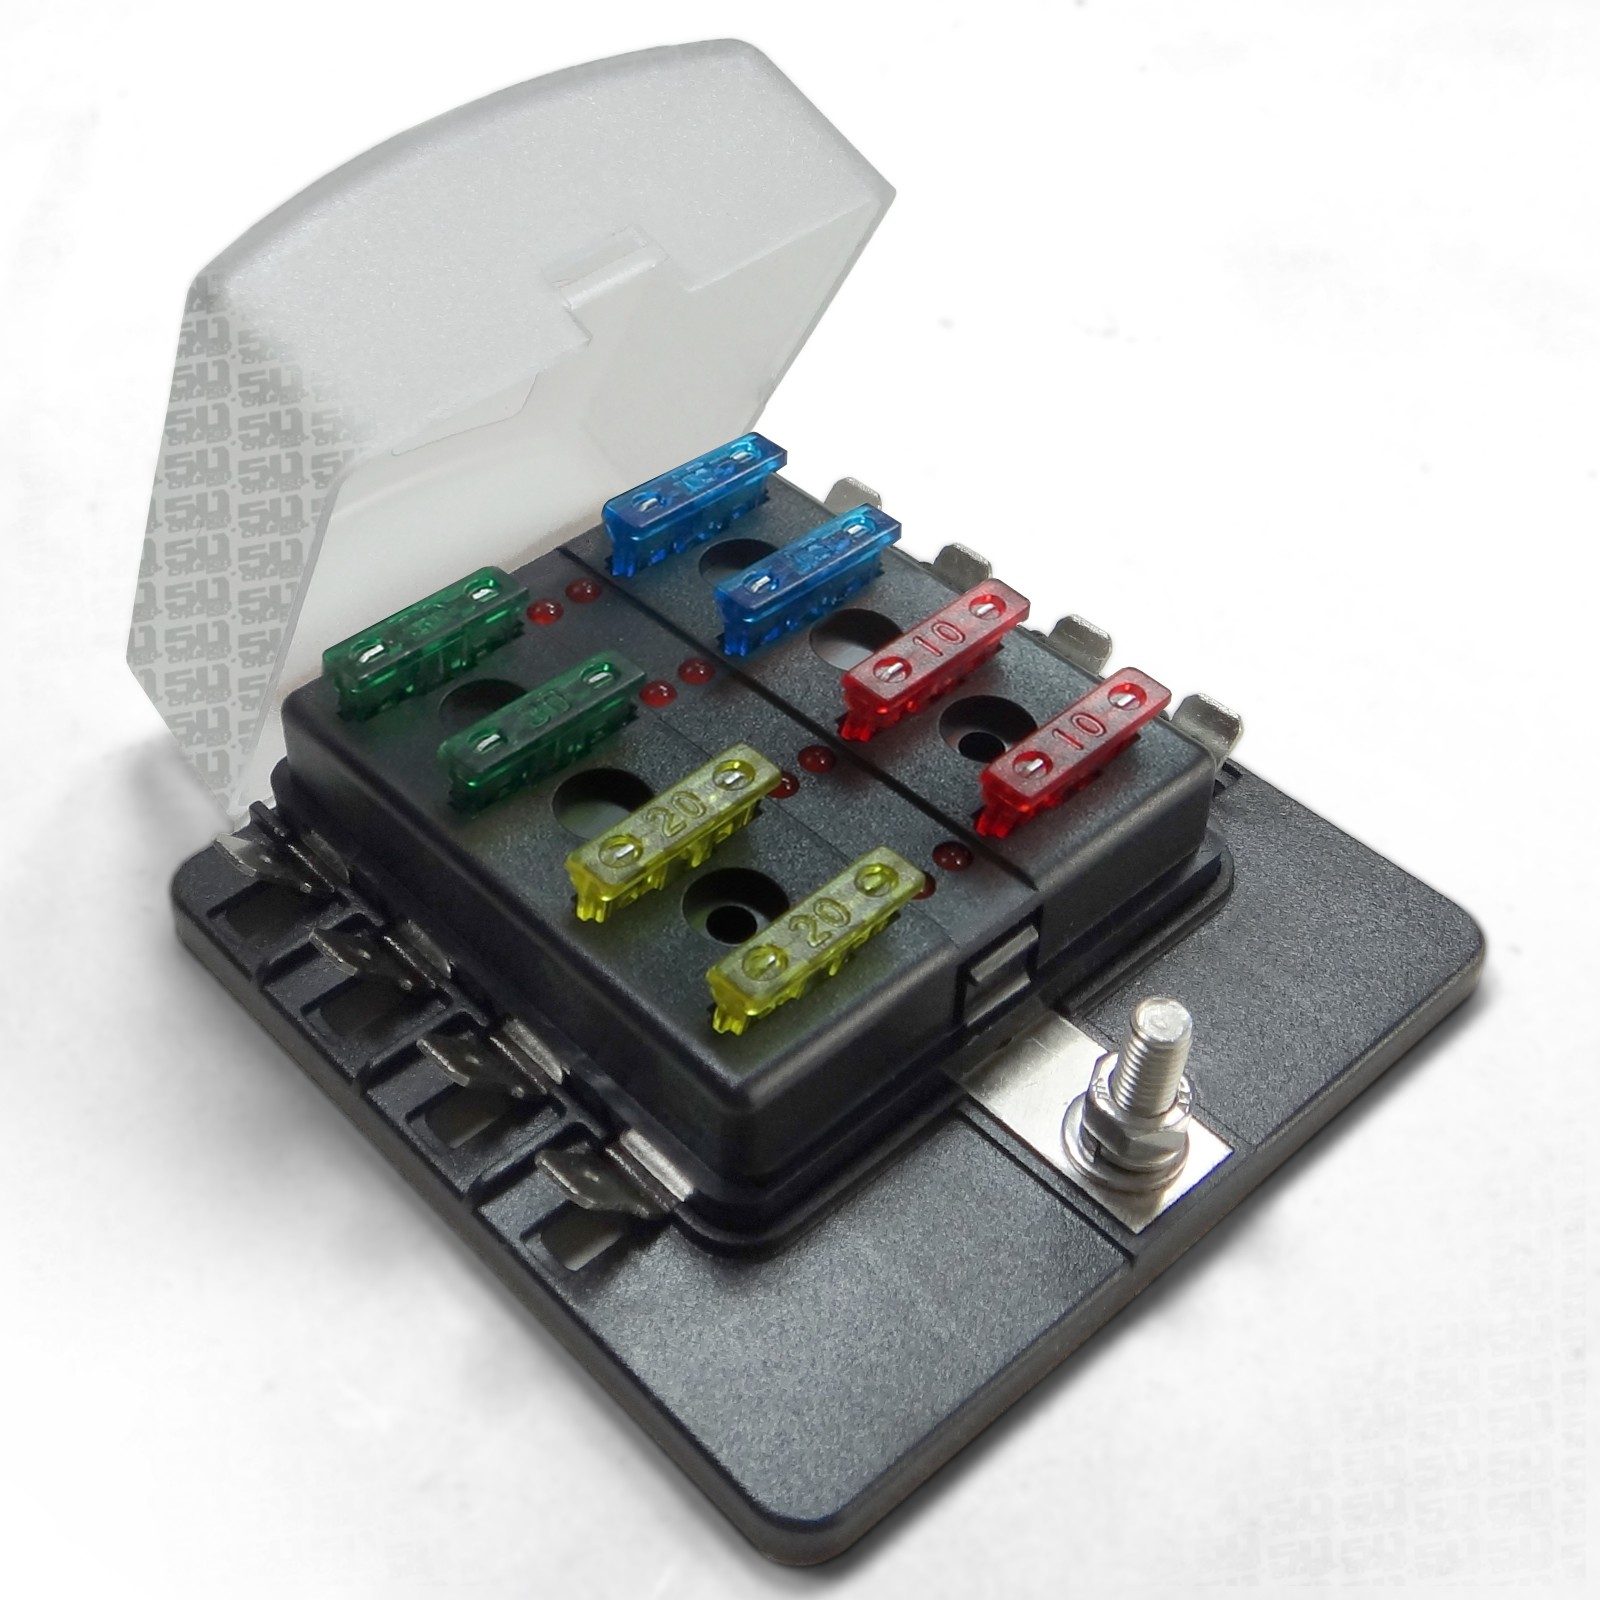 8 Way 12v Blade Fuse Box Distribution Block With Led Indicators Hot Car Universal Circuit Terminal Clear Cover Fuses